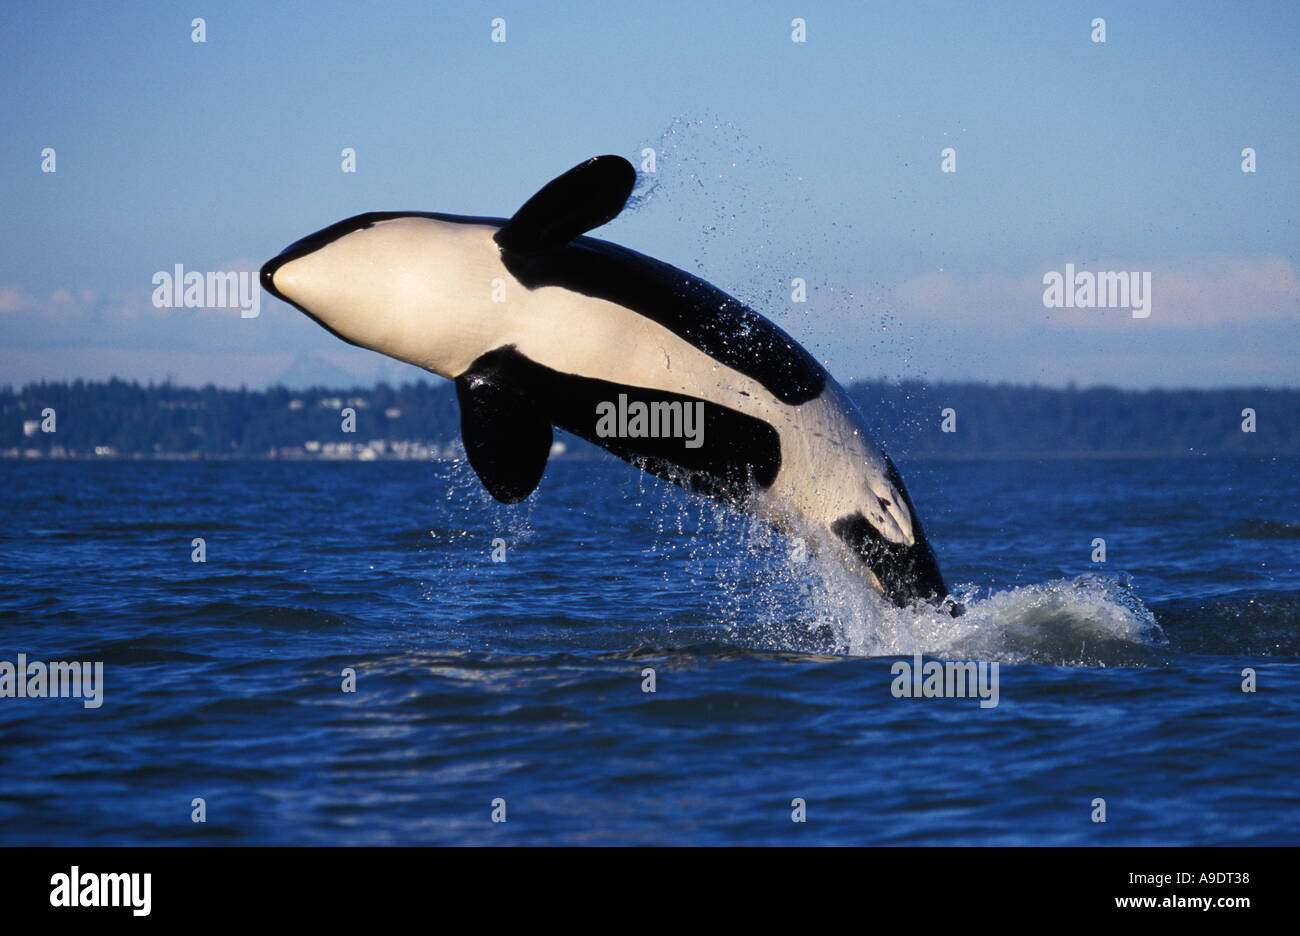 ns1 ORCA WHALE Orcinus orca breaching British Columbia Canada Pacific Ocean Photo Copyright Brandon Cole - Stock Image